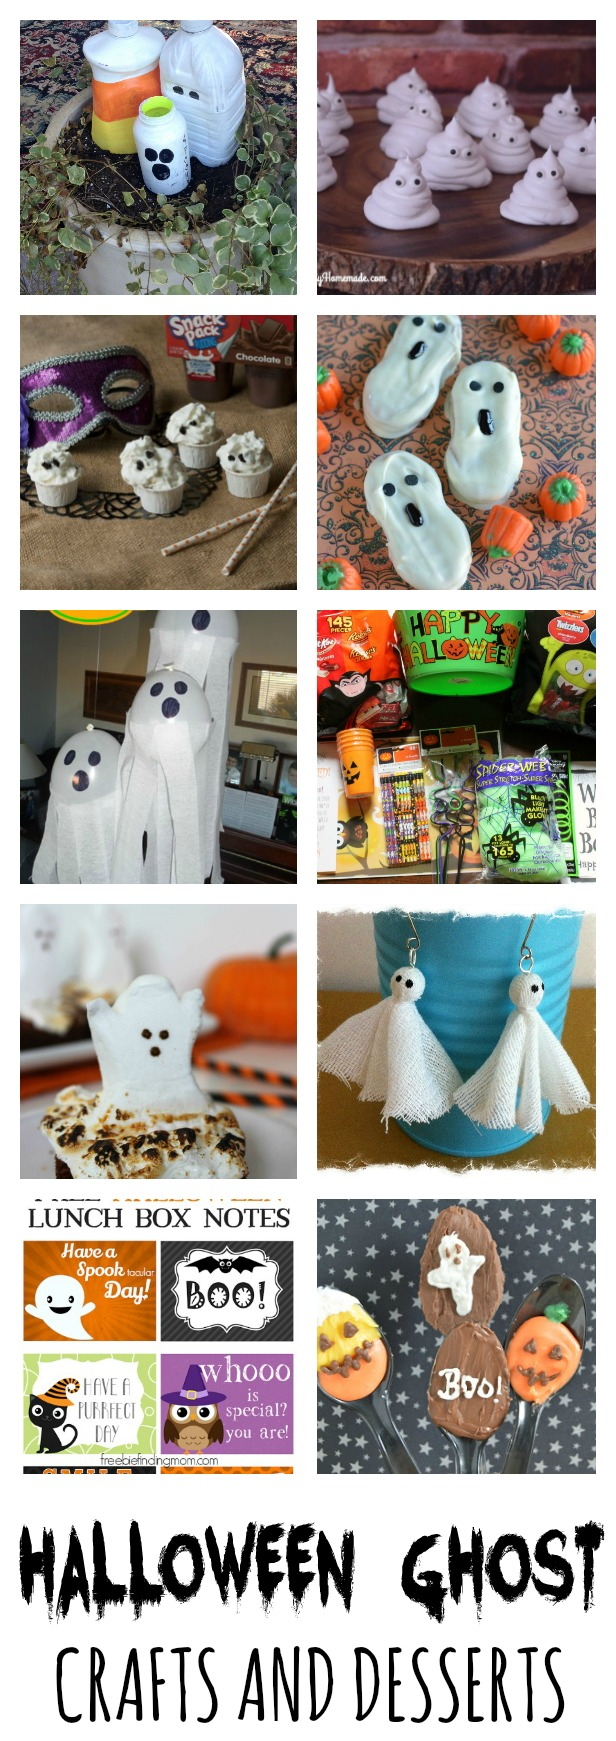 Halloween Ghost Crafts and Desserts! Simple and fun Halloween ghost ideas.